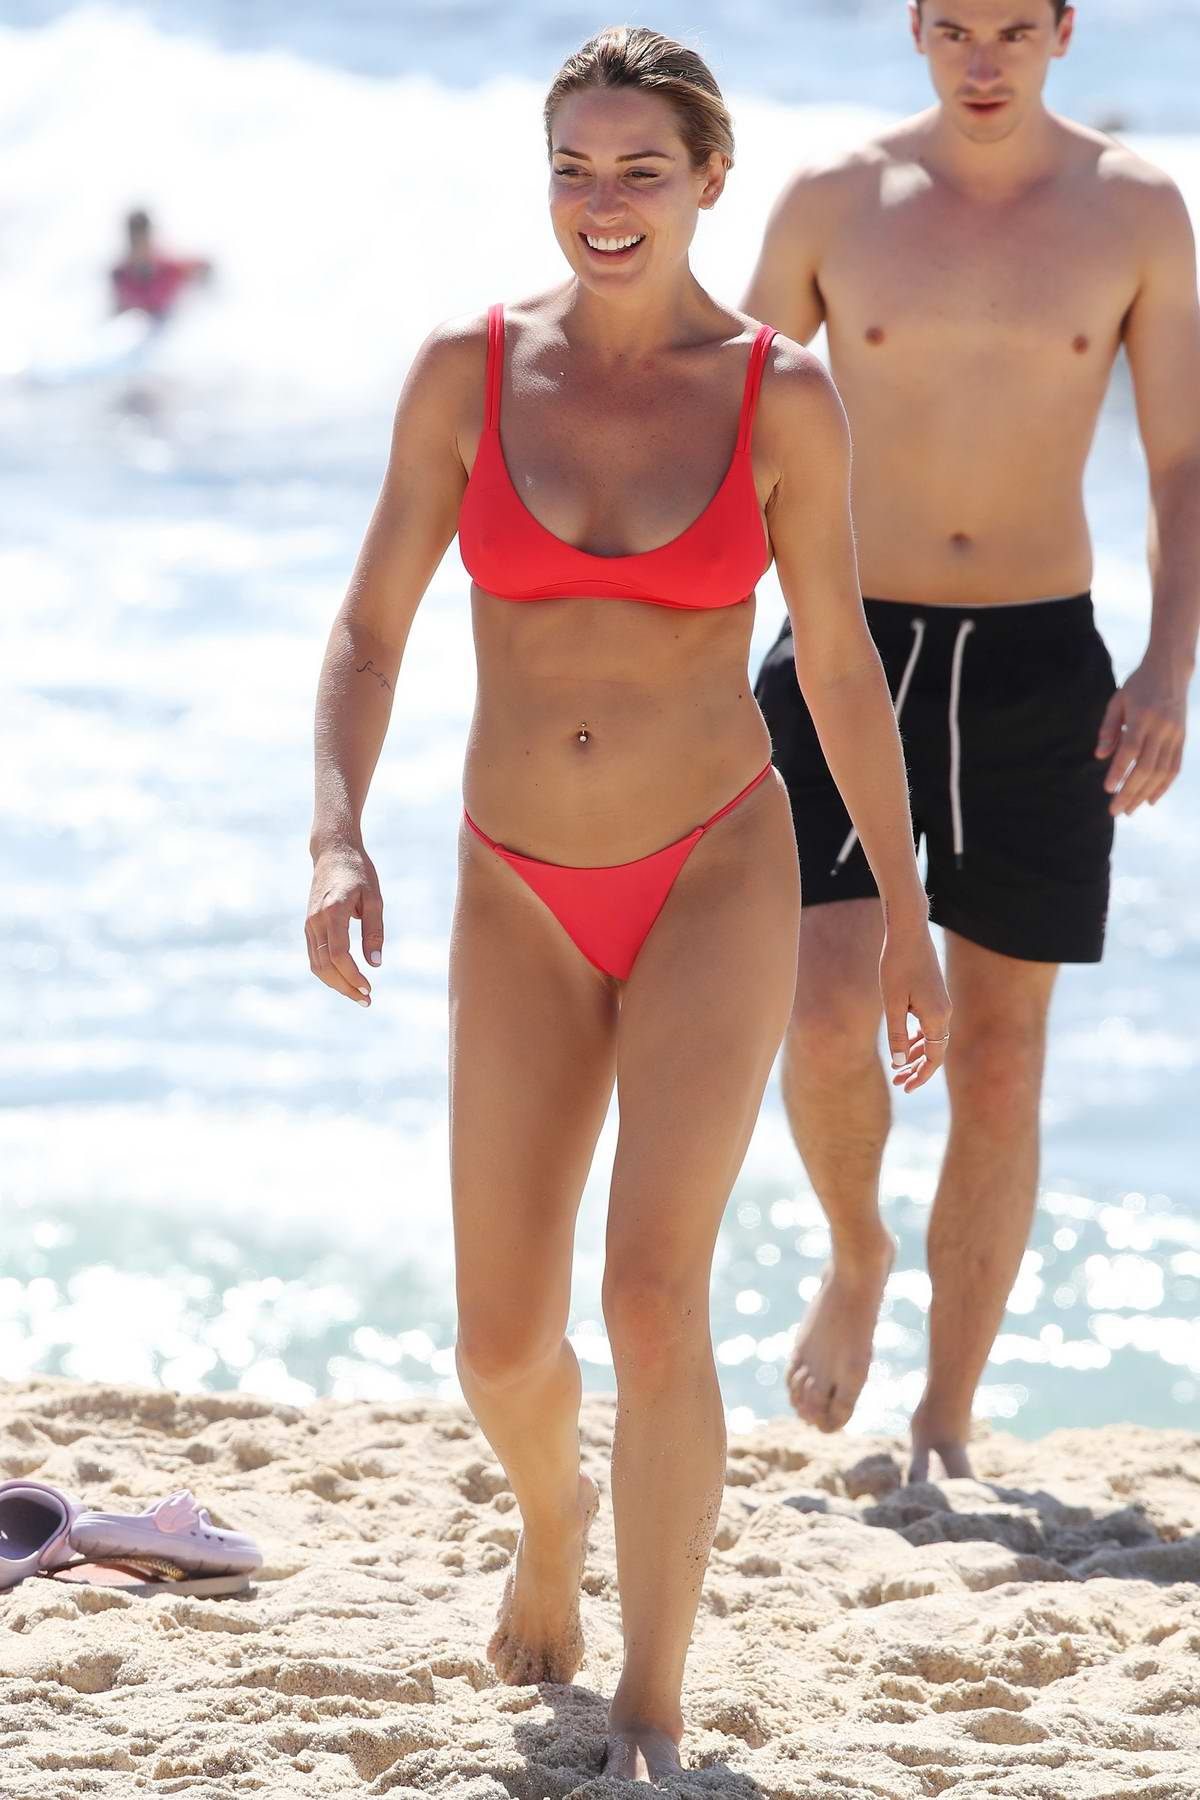 Lisa Clark seen wearing a red bikini during a beach outing with a male friend in Sydney, Australia